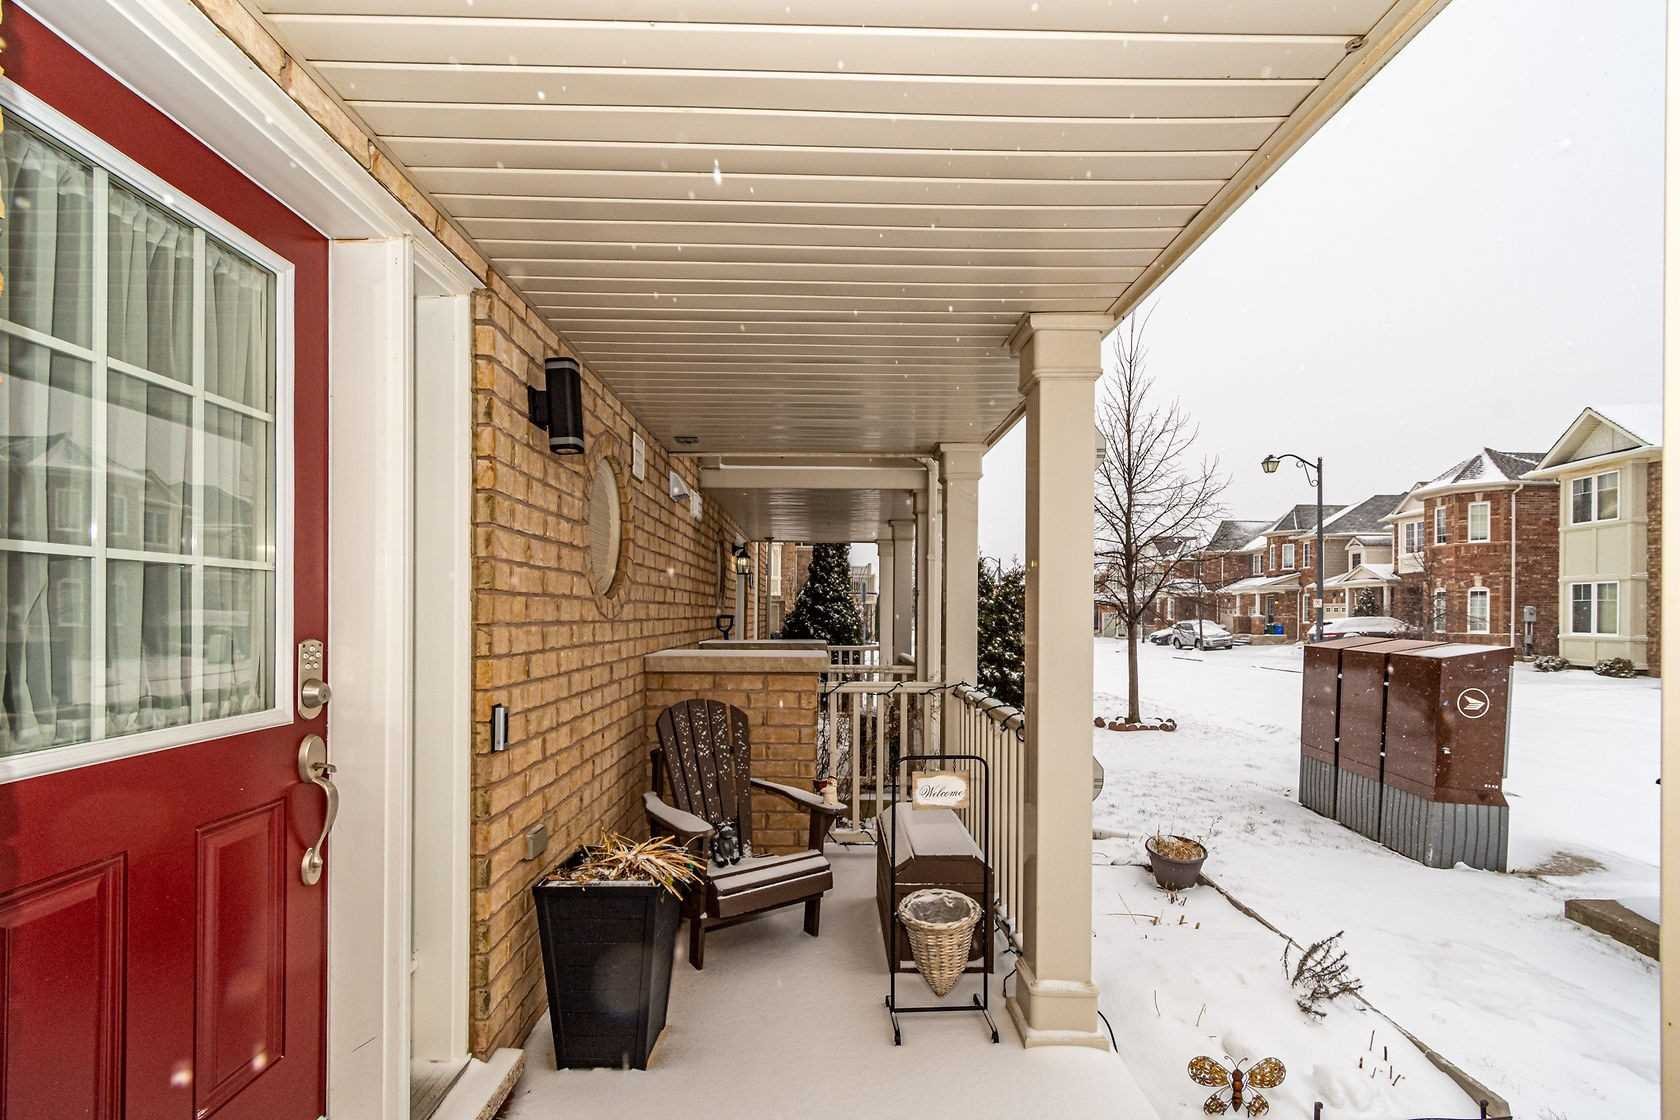 Image 14 of 20 showing inside of 3 Bedroom Att/Row/Twnhouse 3-Storey house for sale at 912 Ambroise Cres, Milton L9T0M2